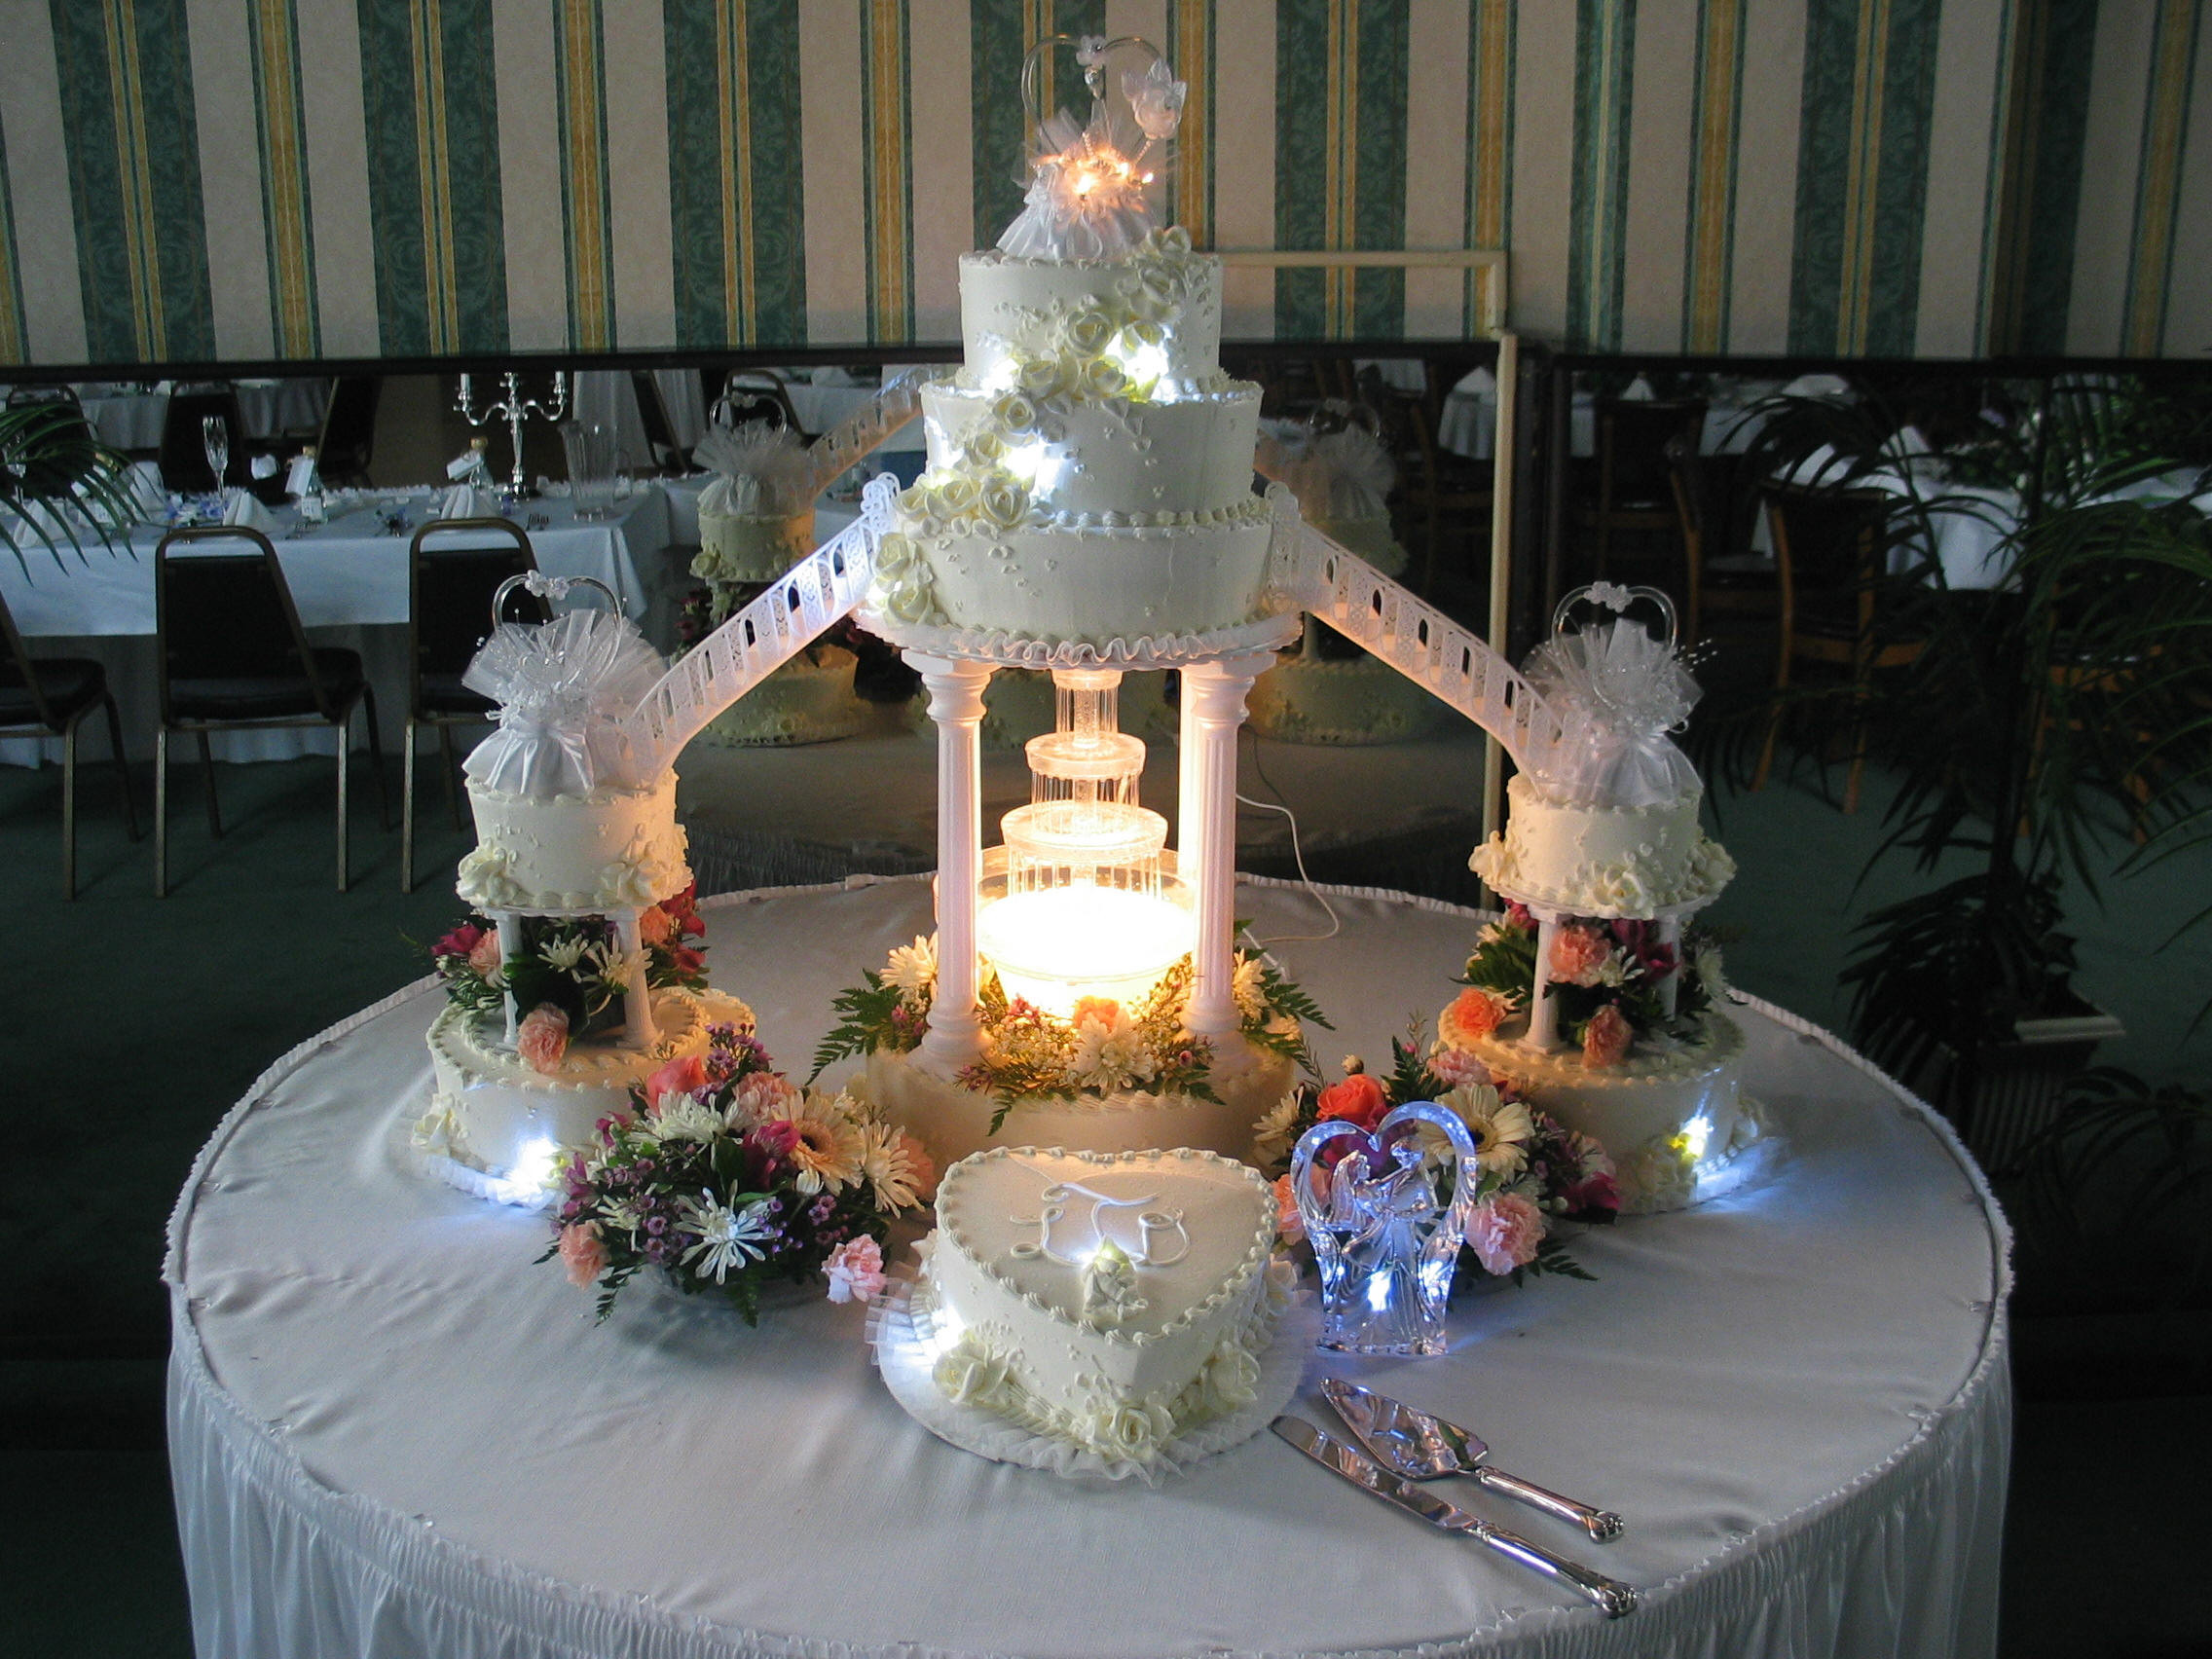 Wedding Cakes For Sale  Wedding cake fountains for sale idea in 2017